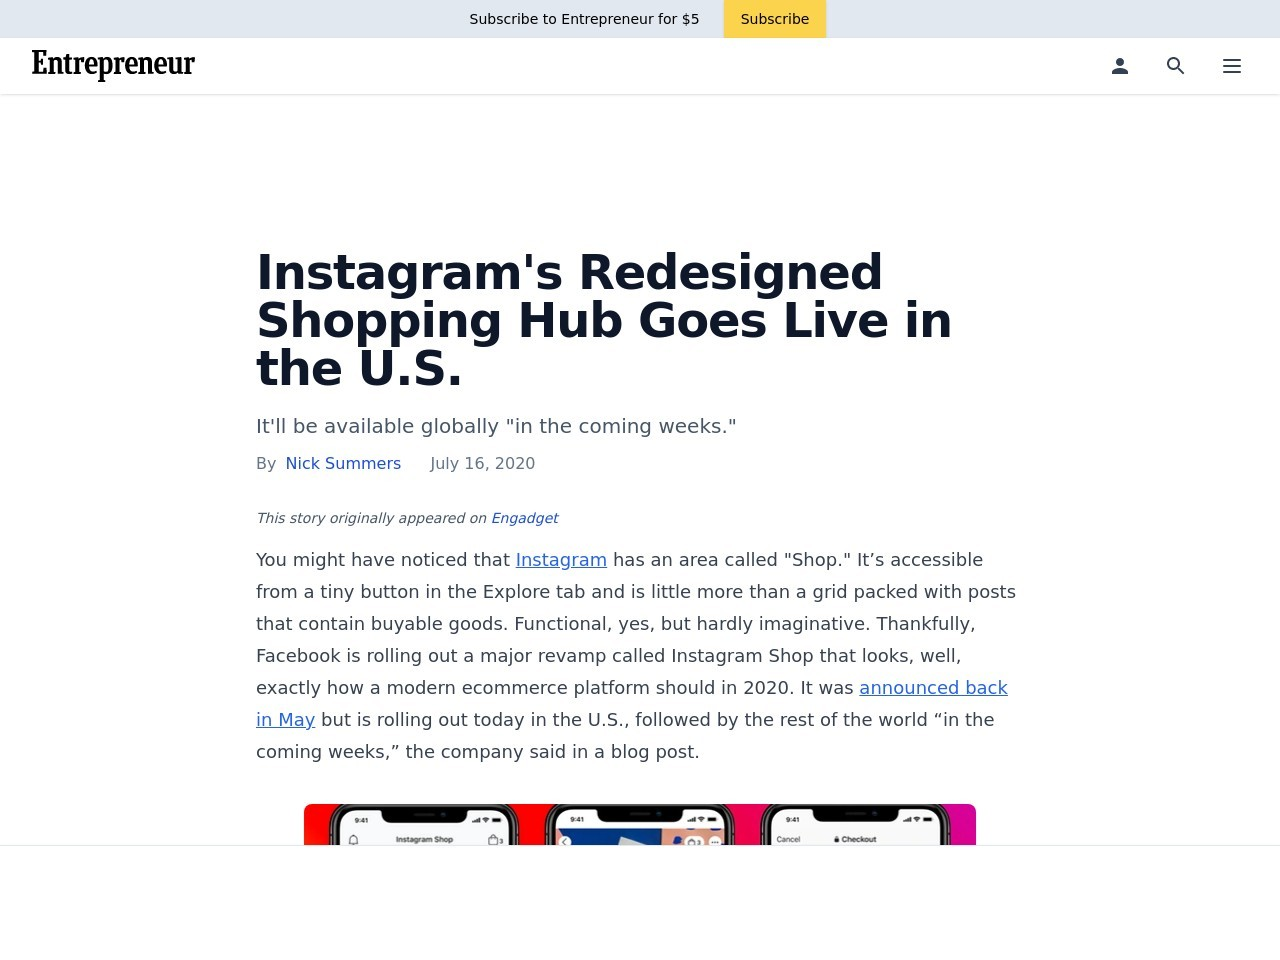 Instagram's Redesigned Shopping Hub Goes Live in the U.S.